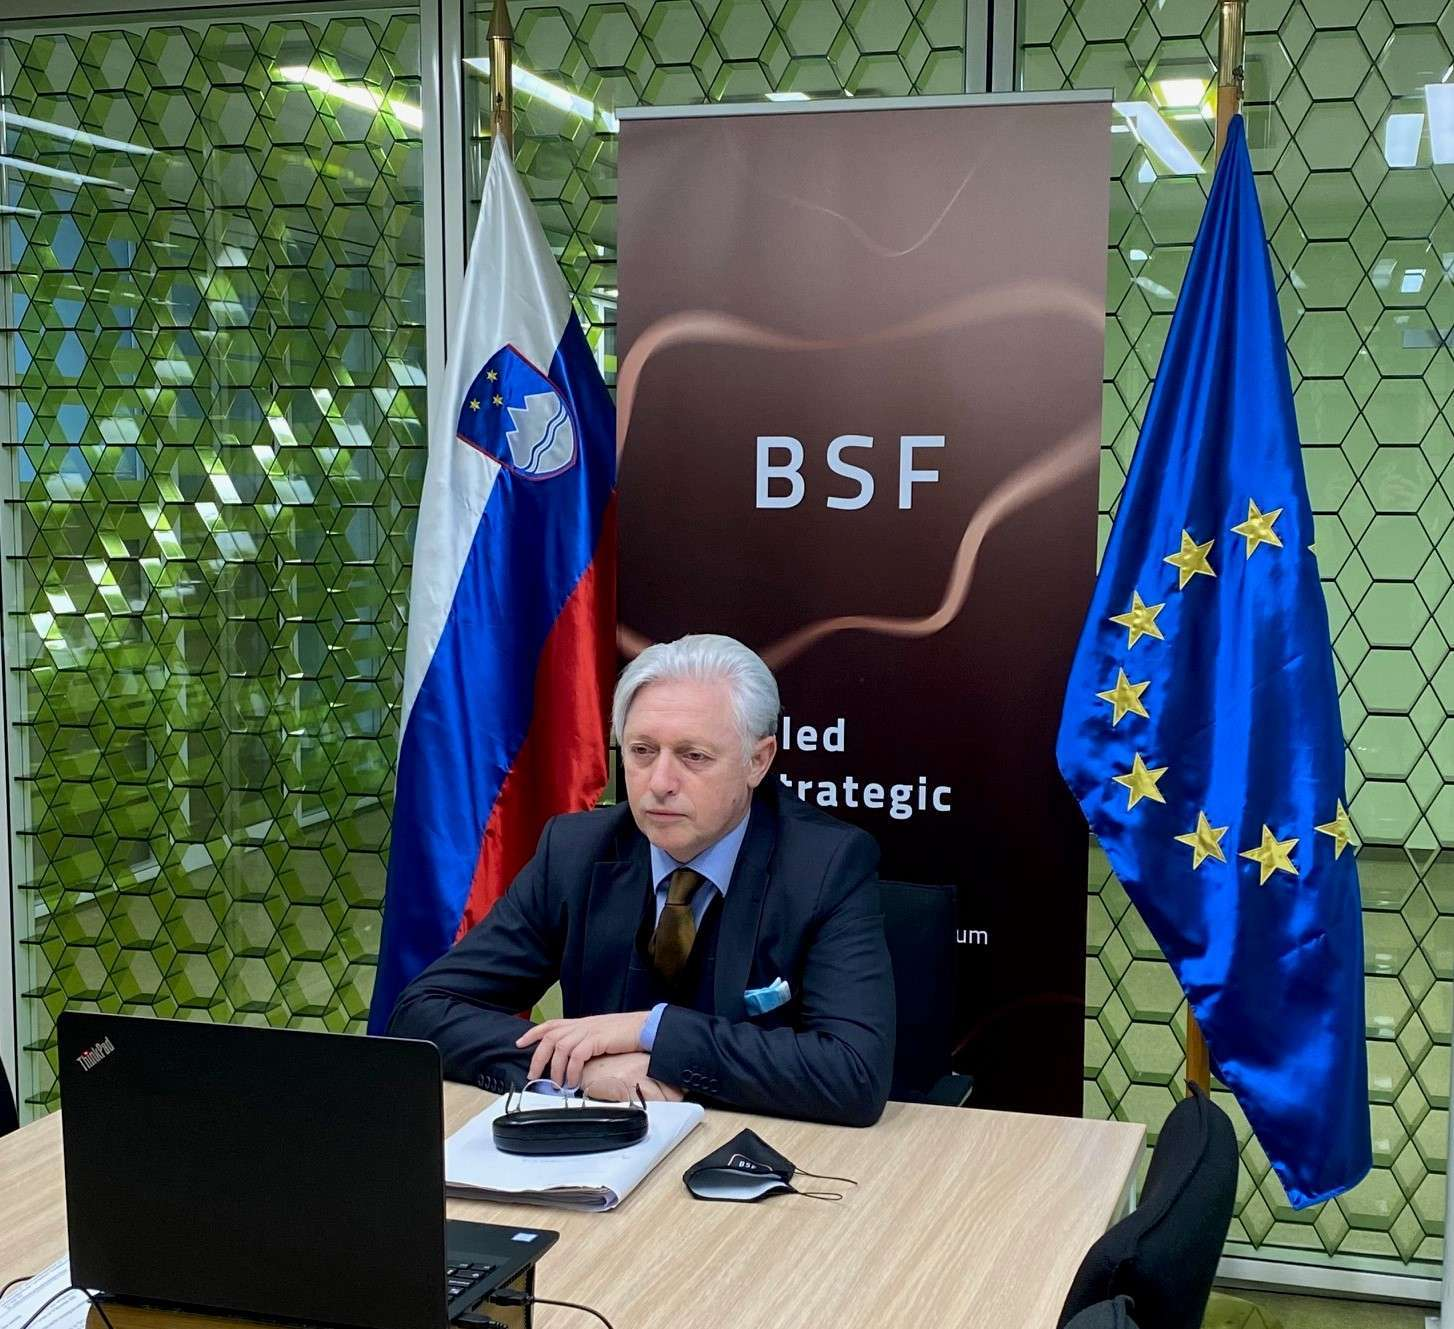 Ambassador Mirošič on the challenges for the organization of a physical BSF2020